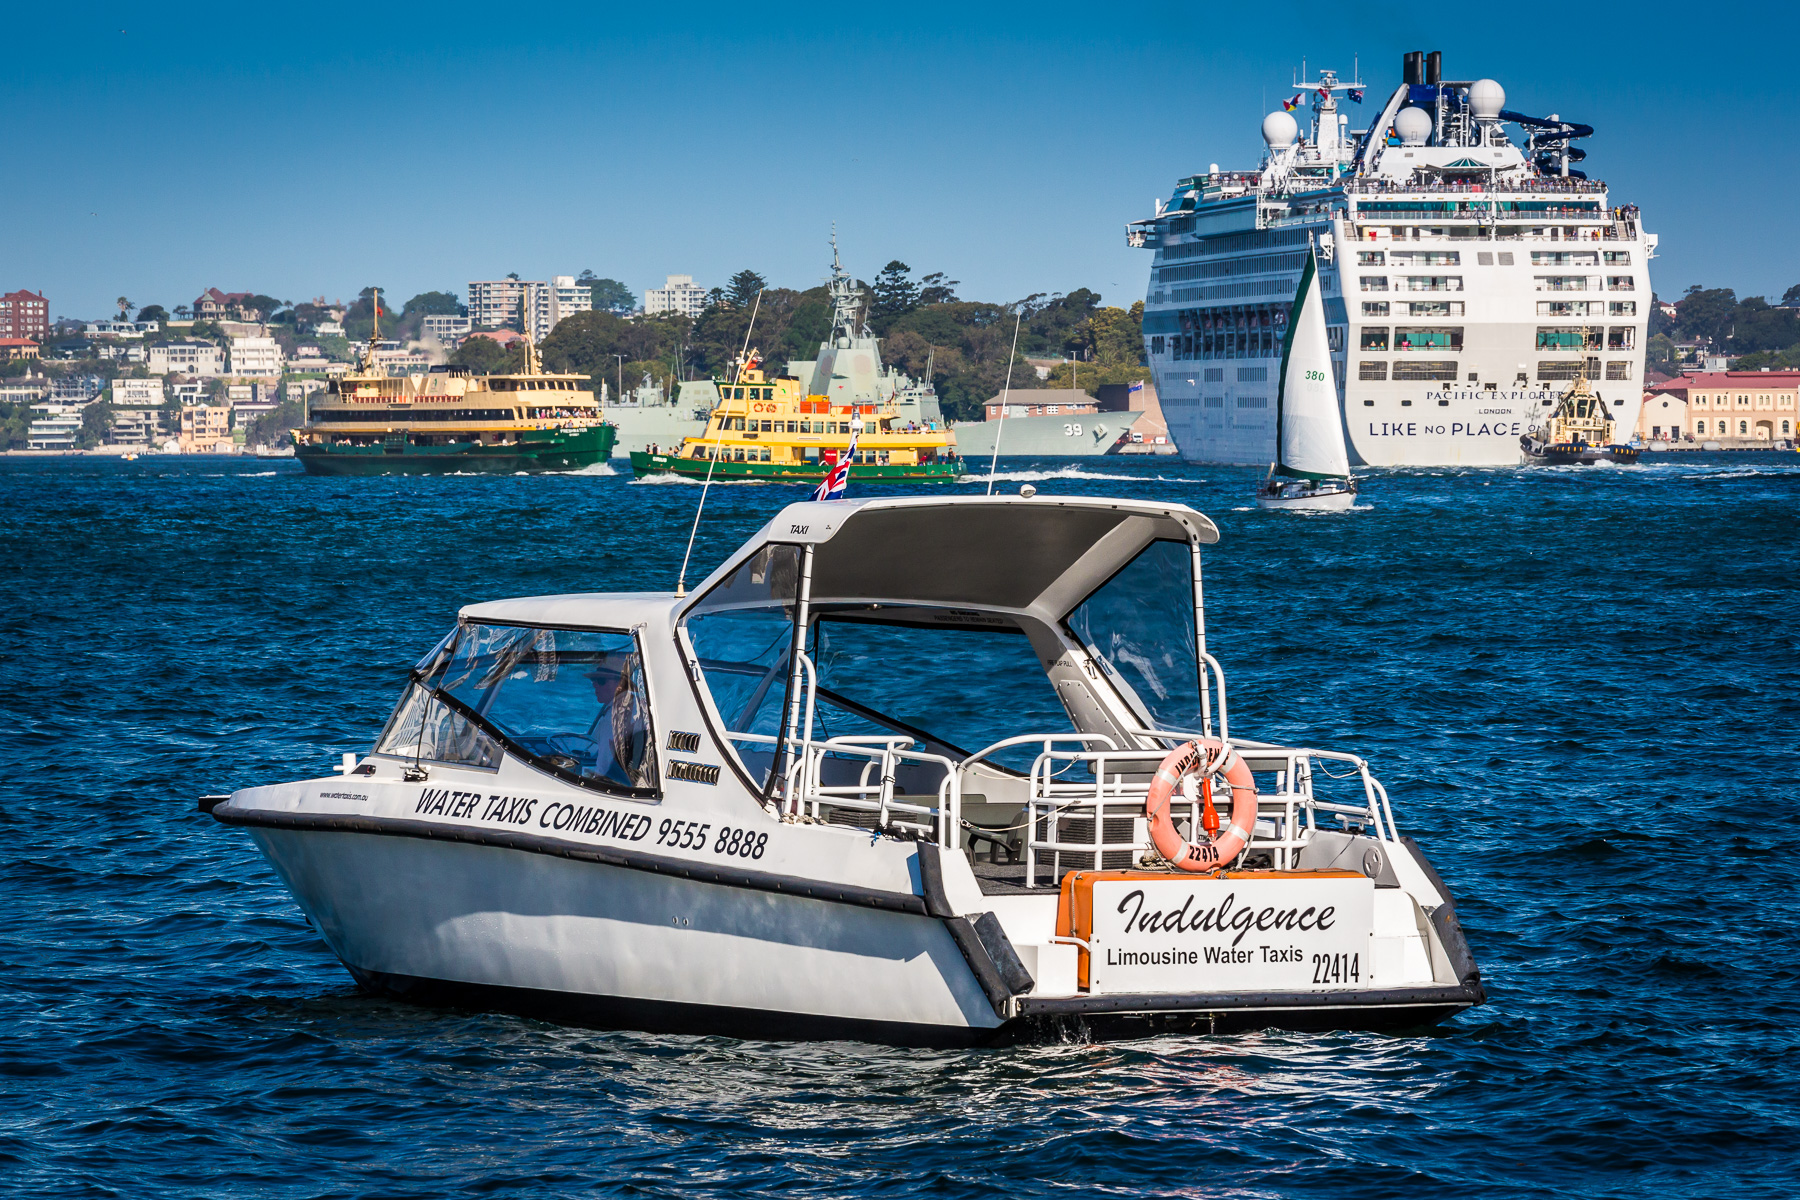 Water taxi on Sydney Harbour.